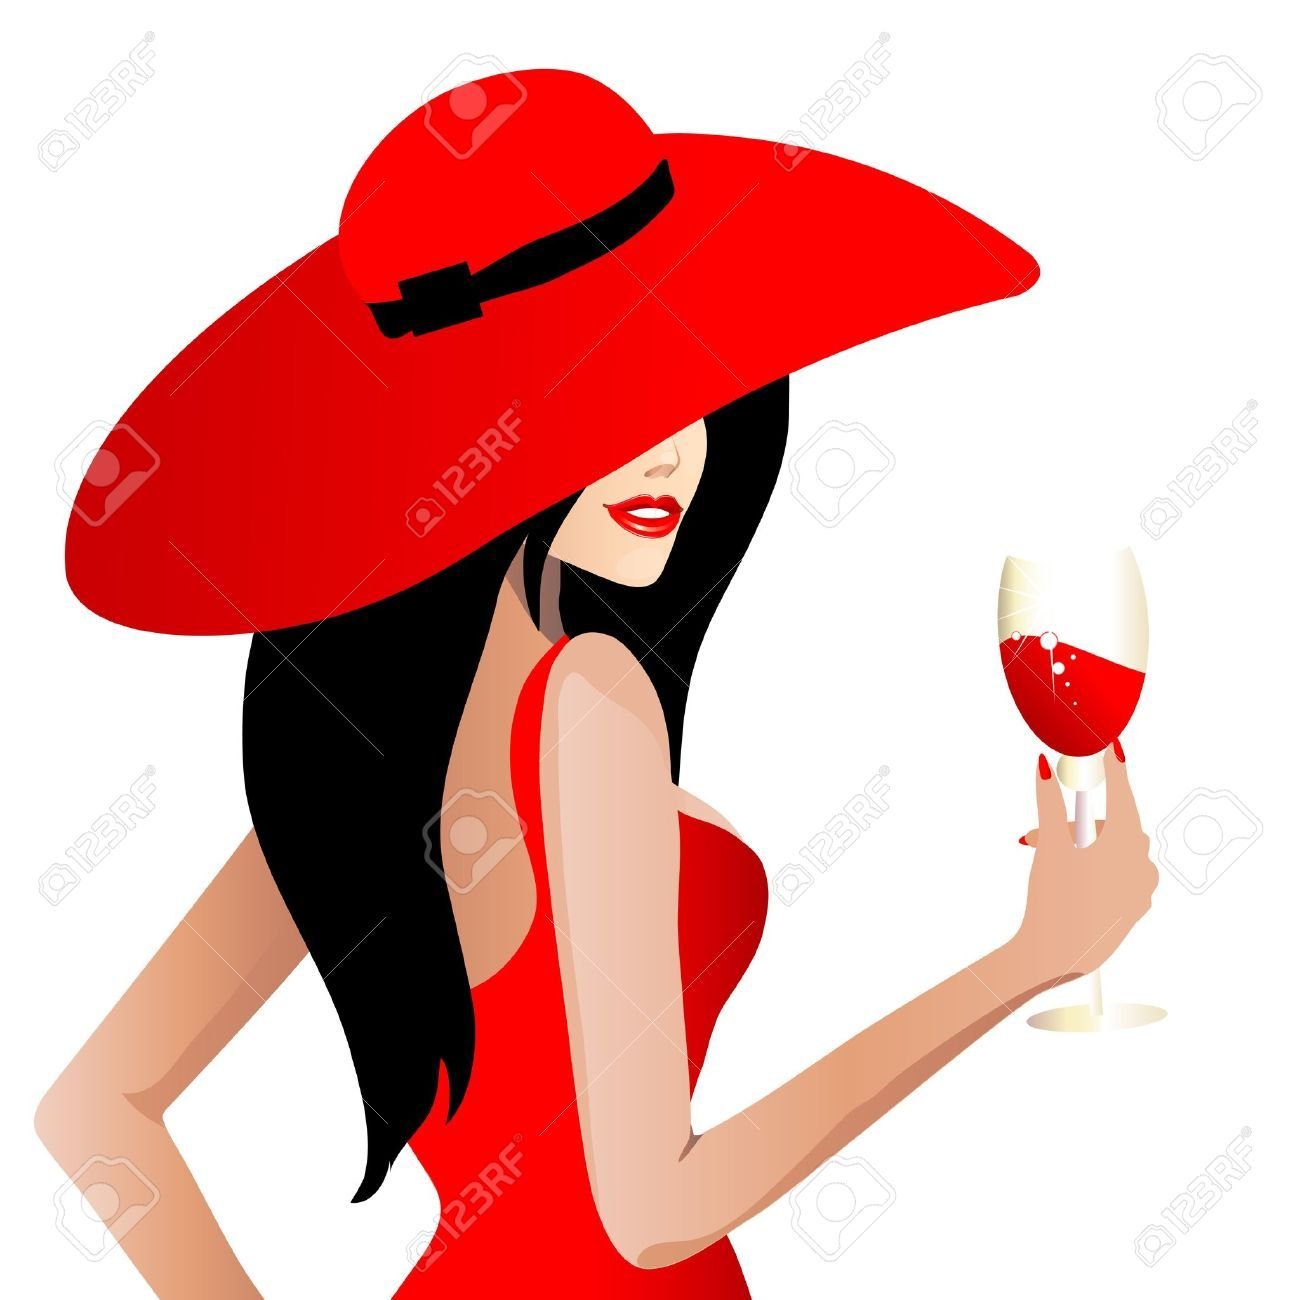 Bella Mujer En El Vestido Rojo Vector In 2020 Girly Art Girly Drawings Art